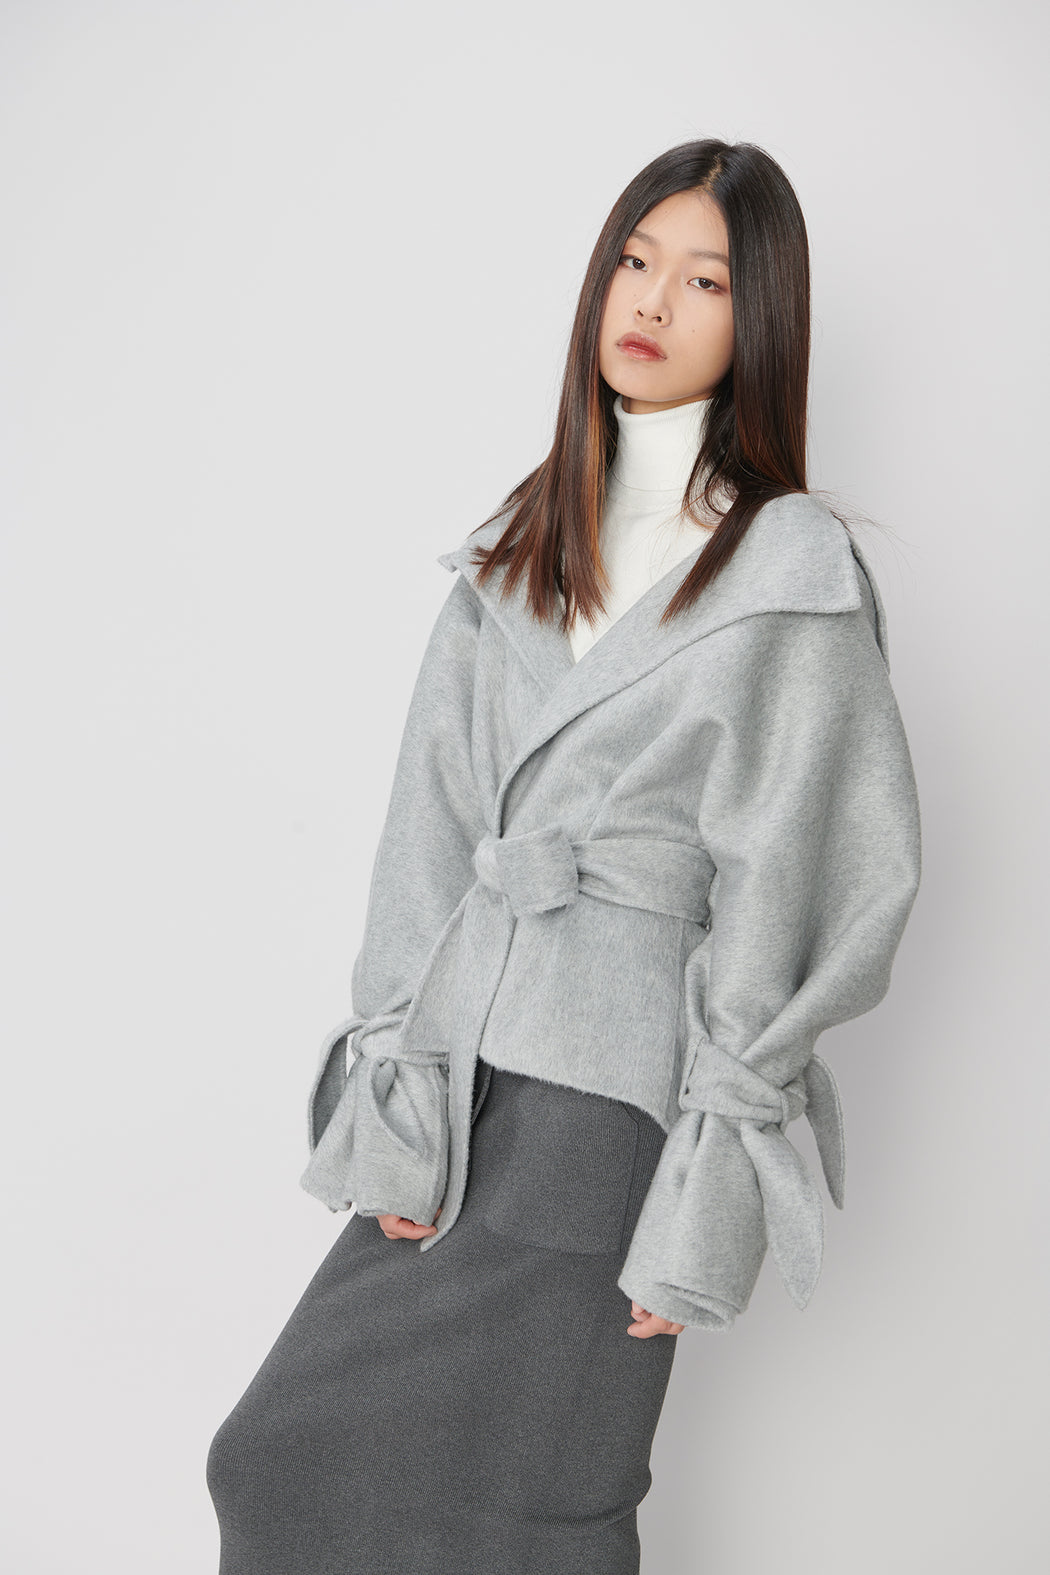 JL042 Cashmere Gray Jacket with Belt